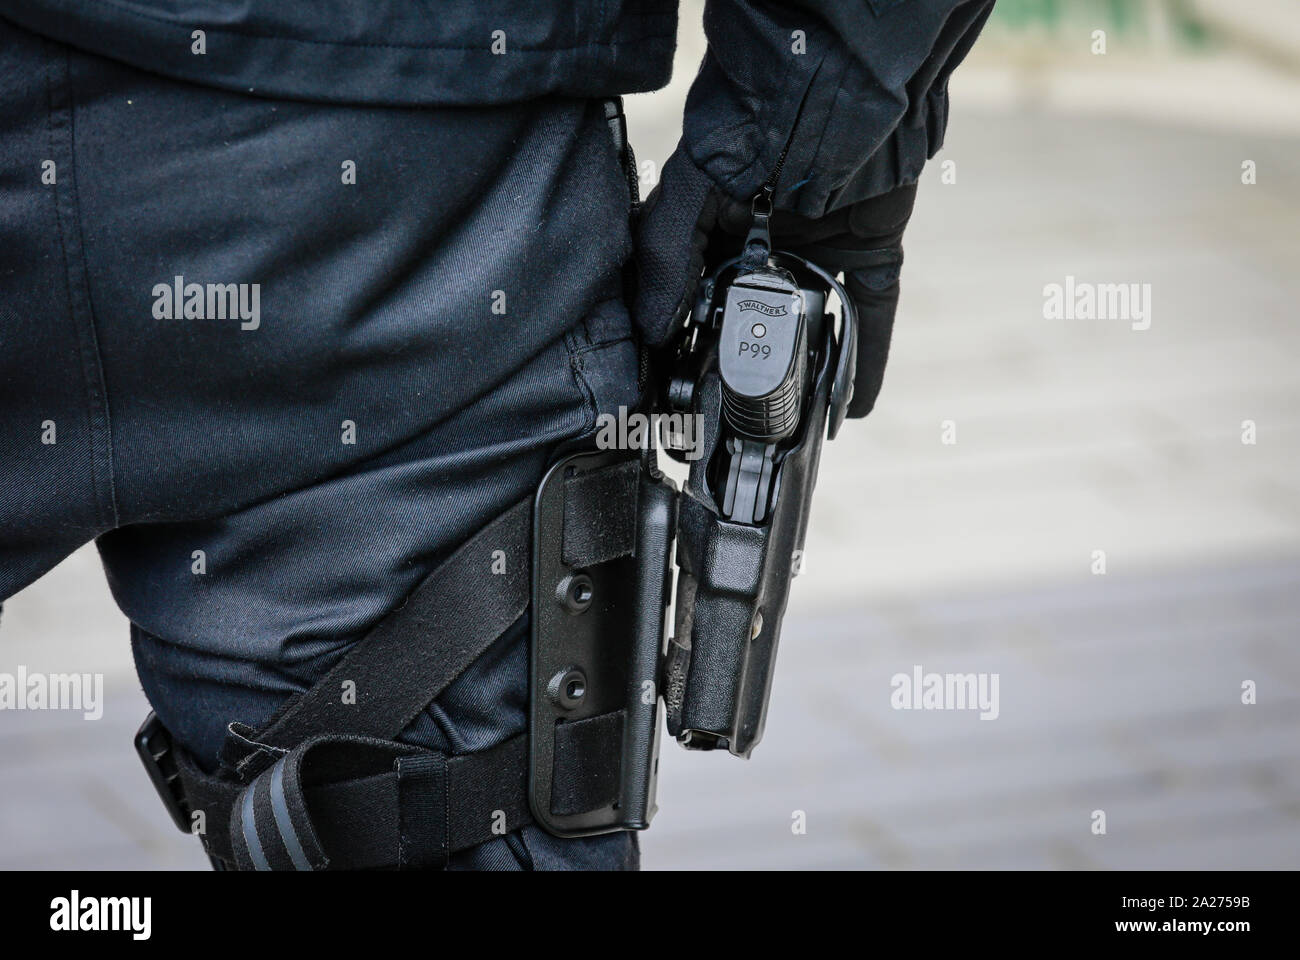 03.05.2019, Essen, North Rhine-Westphalia, Germany - Hand on the service weapon Walther P99, policeman in action at Fridays for Future Demonstration o Stock Photo